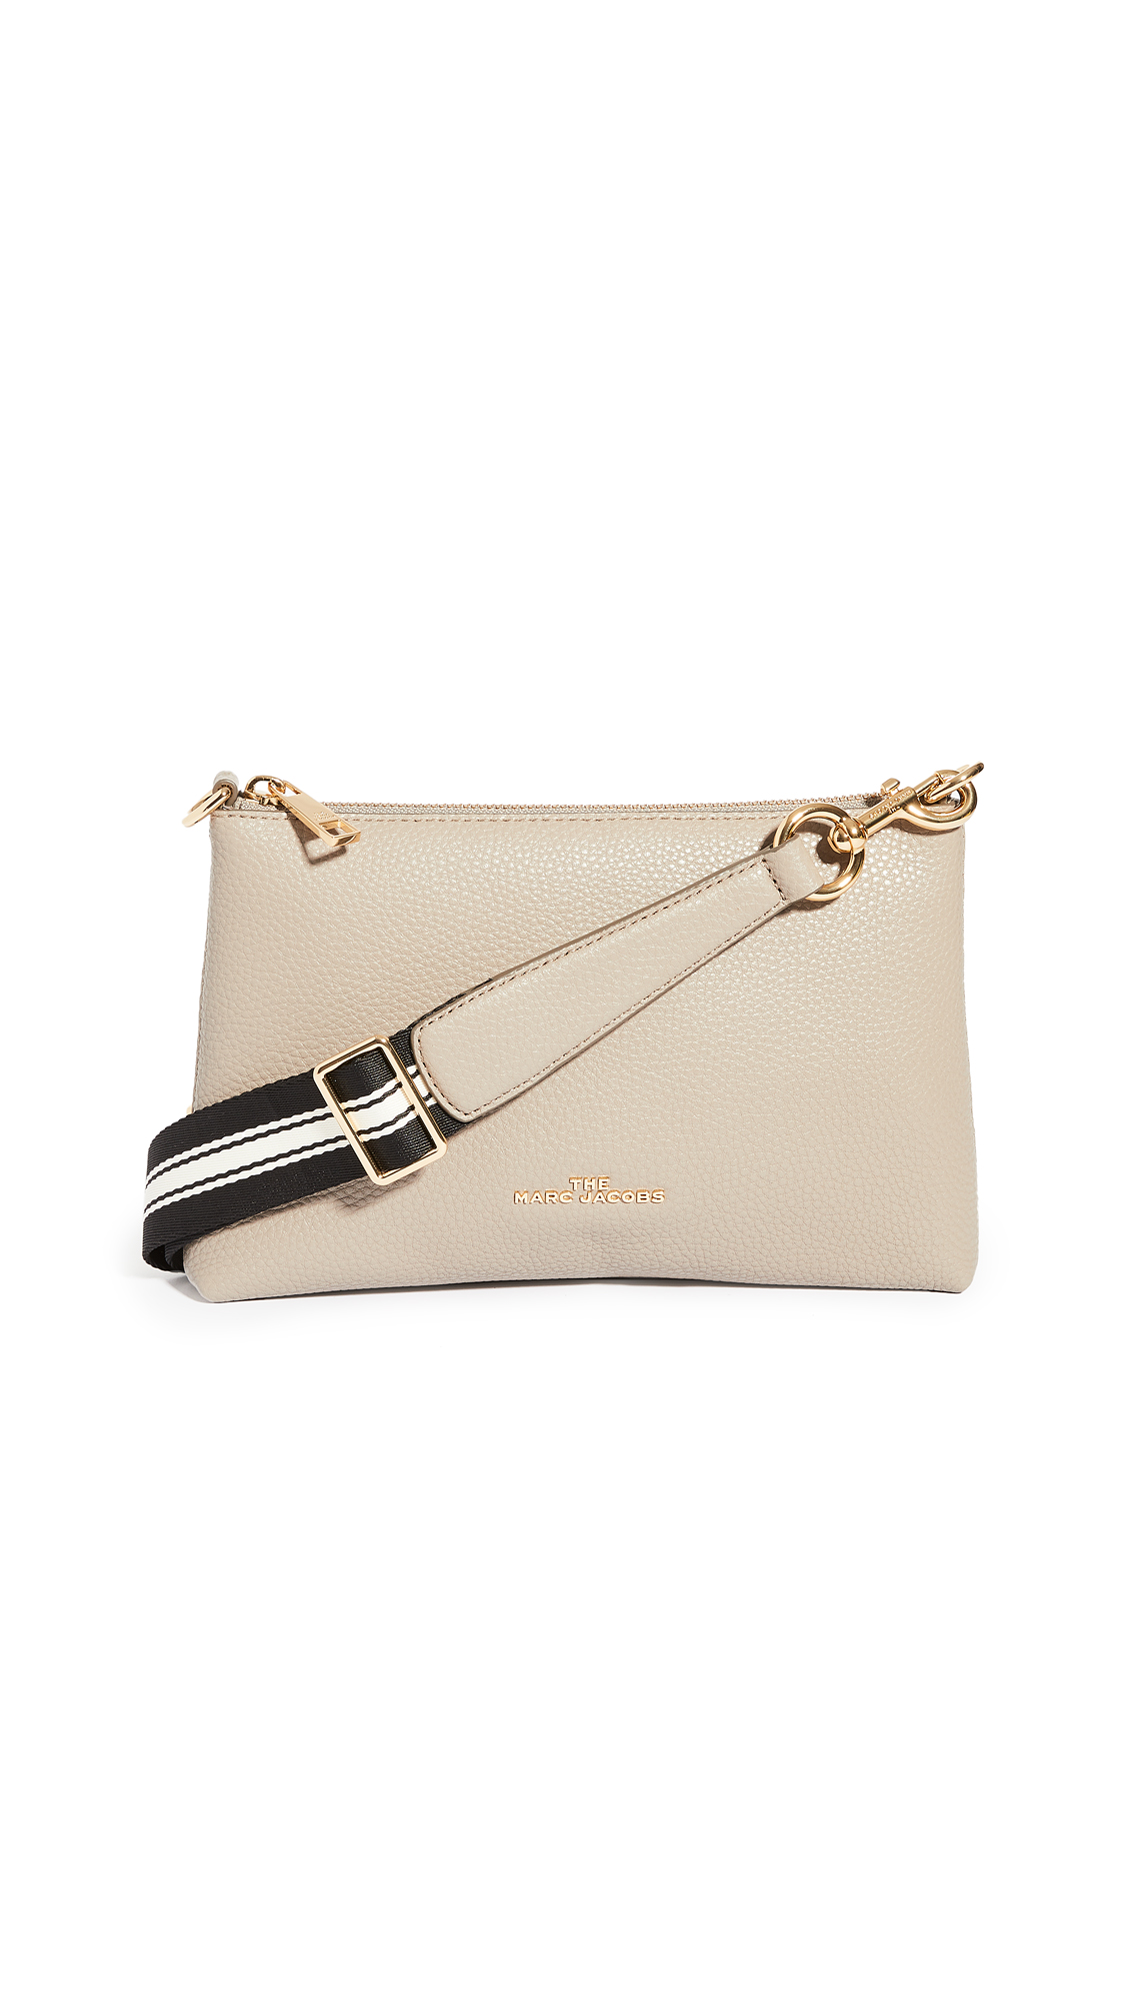 The Marc Jacobs The Swifty Crossbody Bag